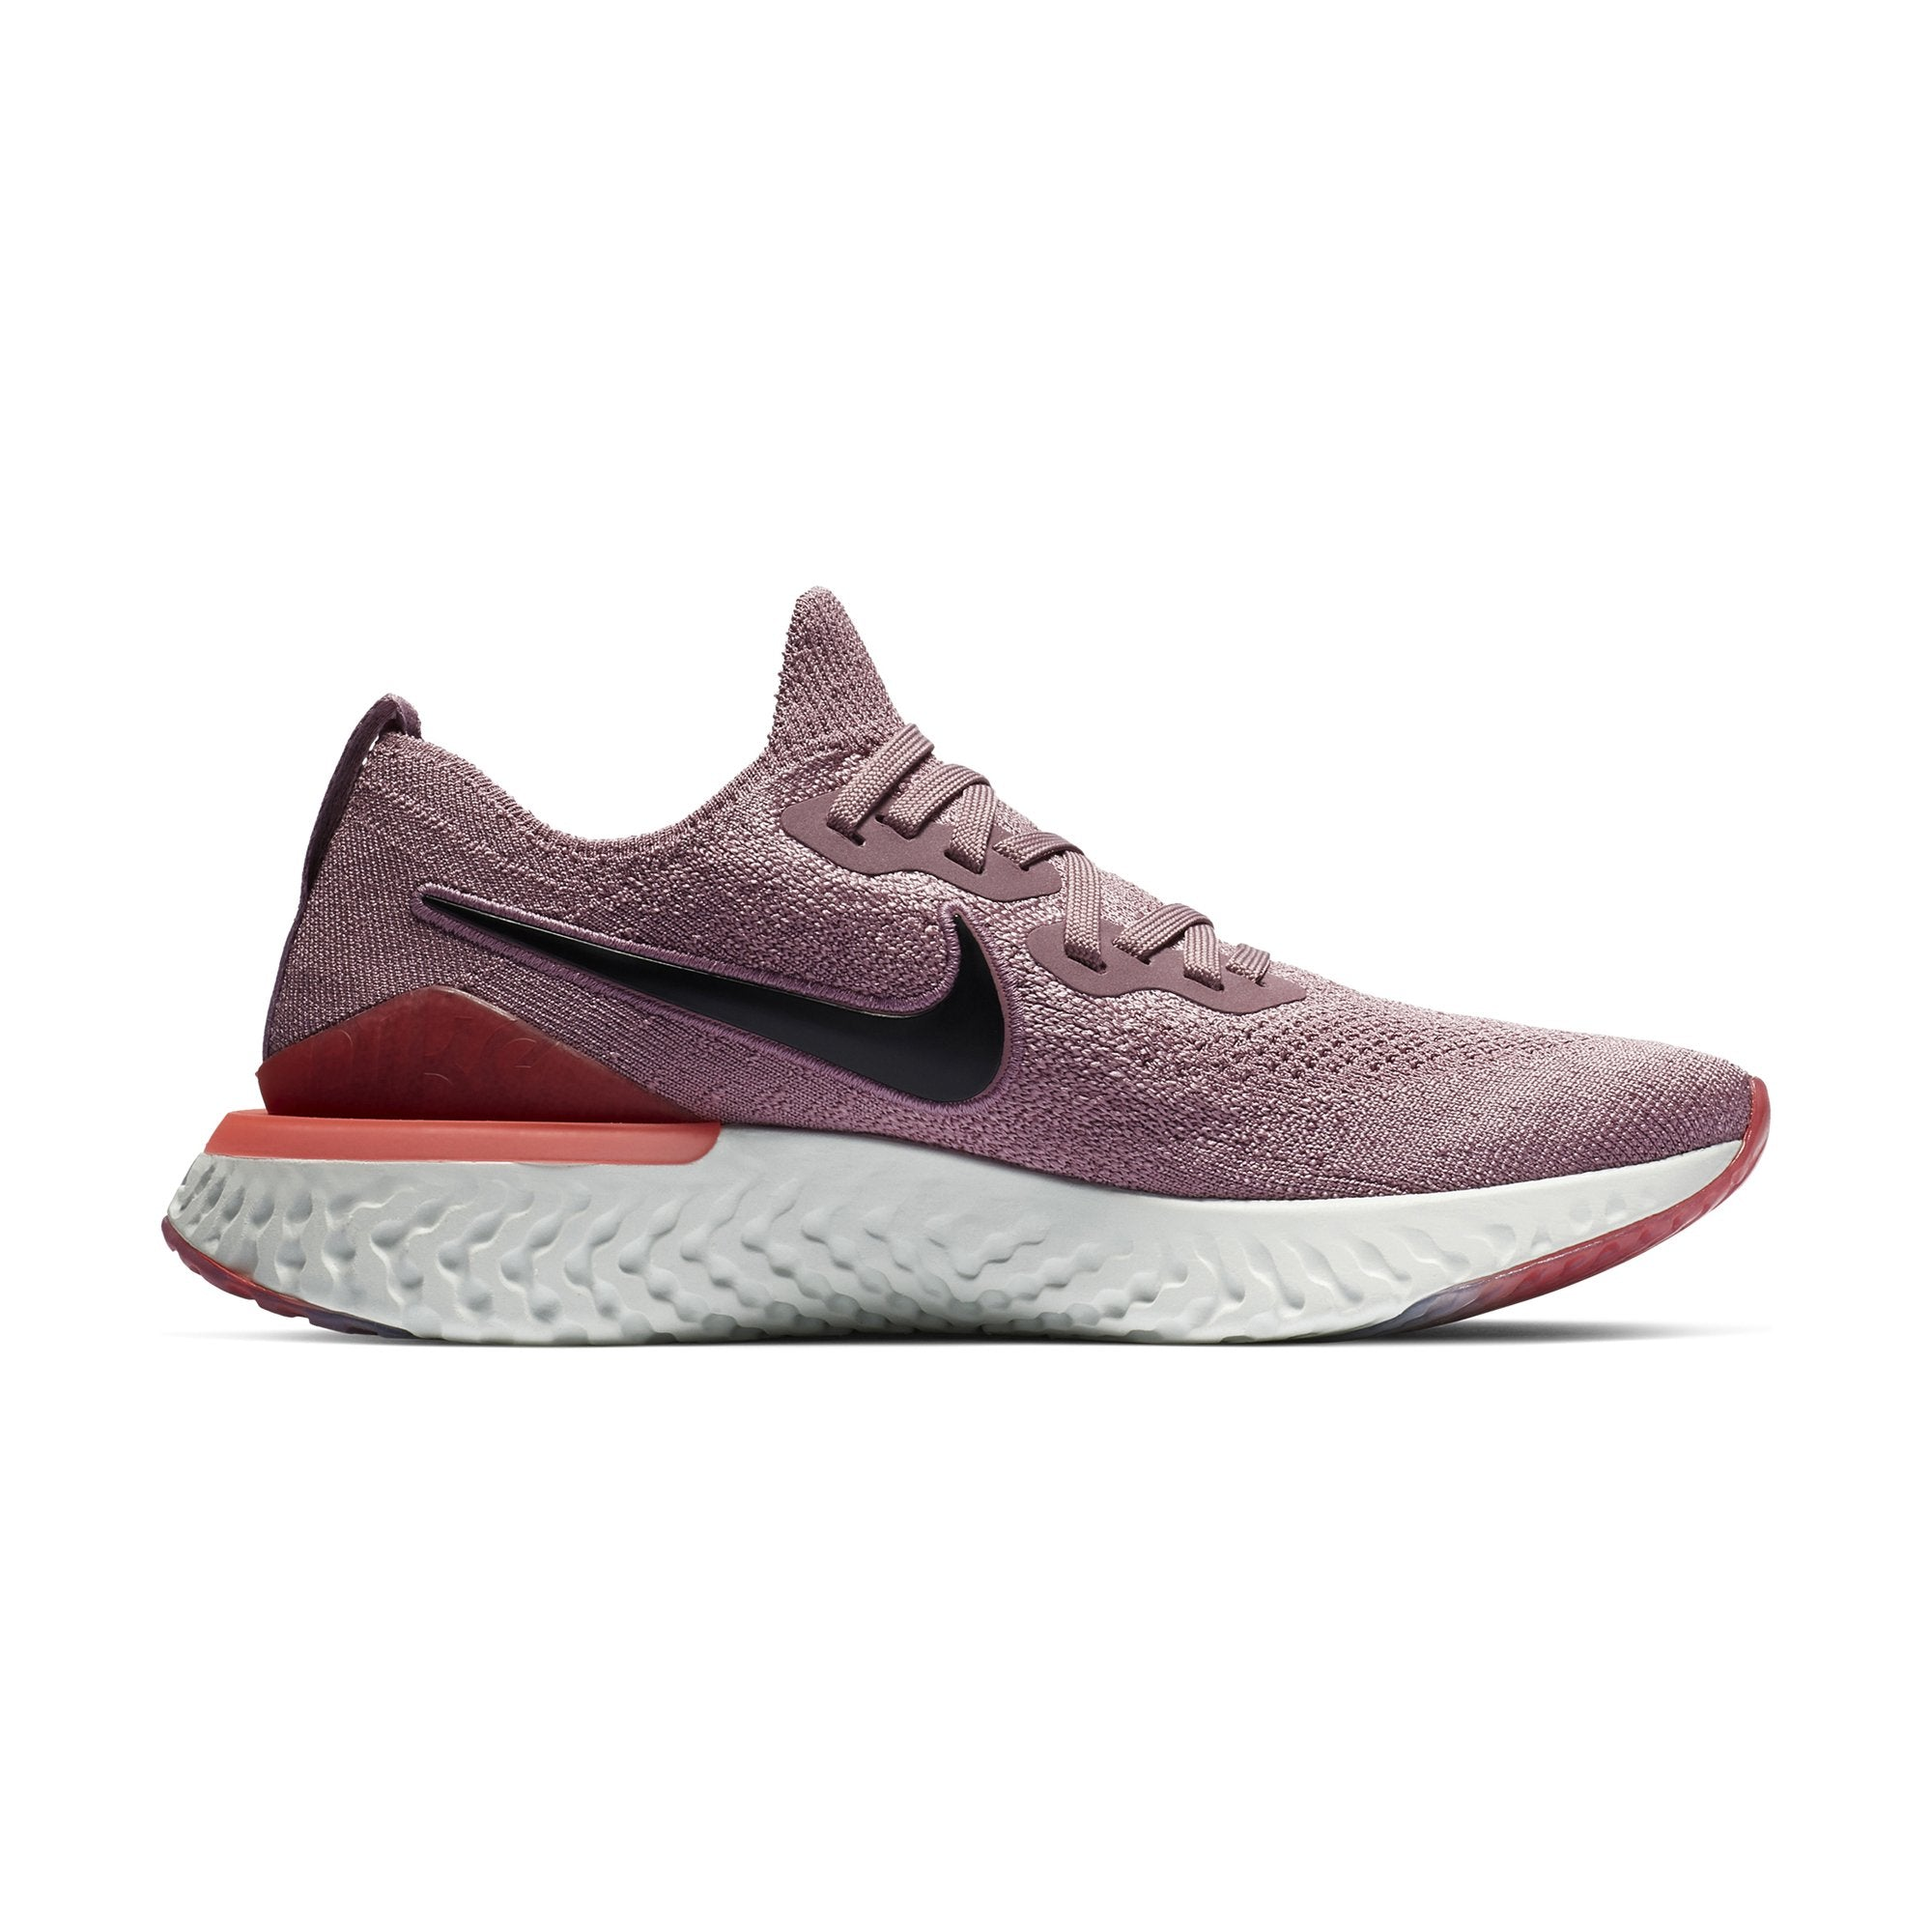 5d5968ba7a07 Buy Nike Women Epic React Flyknit 2 Running Shoes, Plum Dust/Black/Ember  Glow Online in Singapore | Royal Sporting House